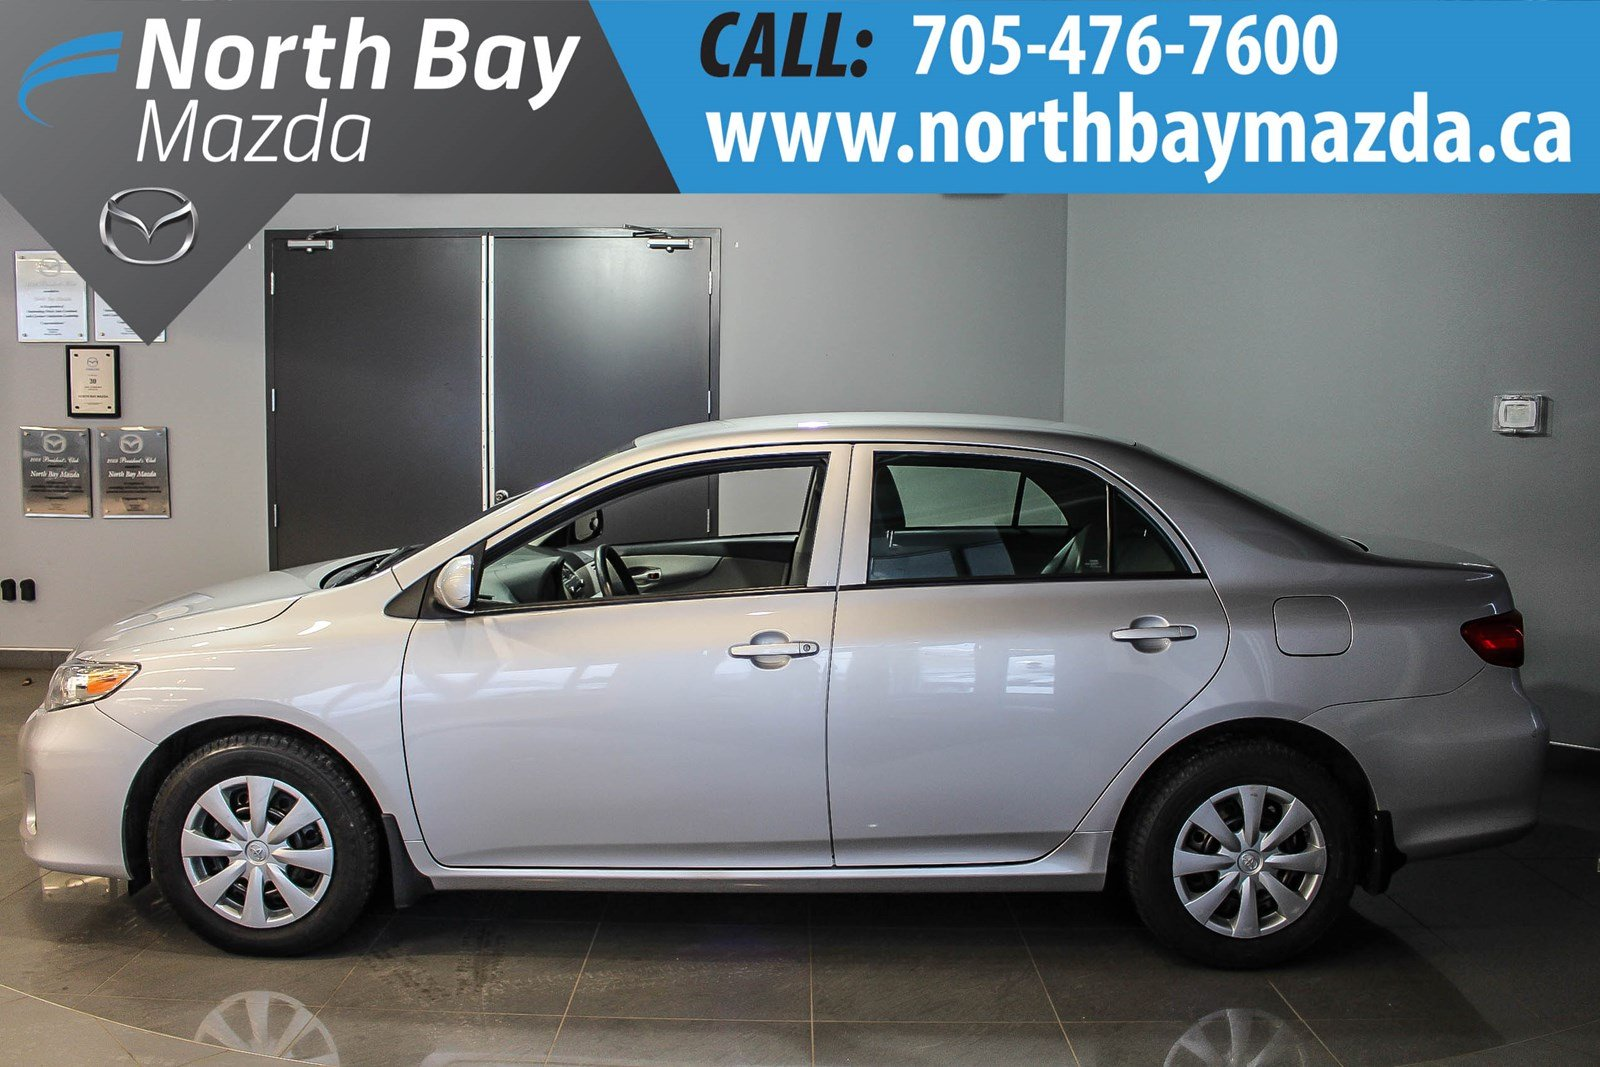 Pre-Owned 2011 Toyota Corolla S Manual Transmission with Winter and Summer  Tires